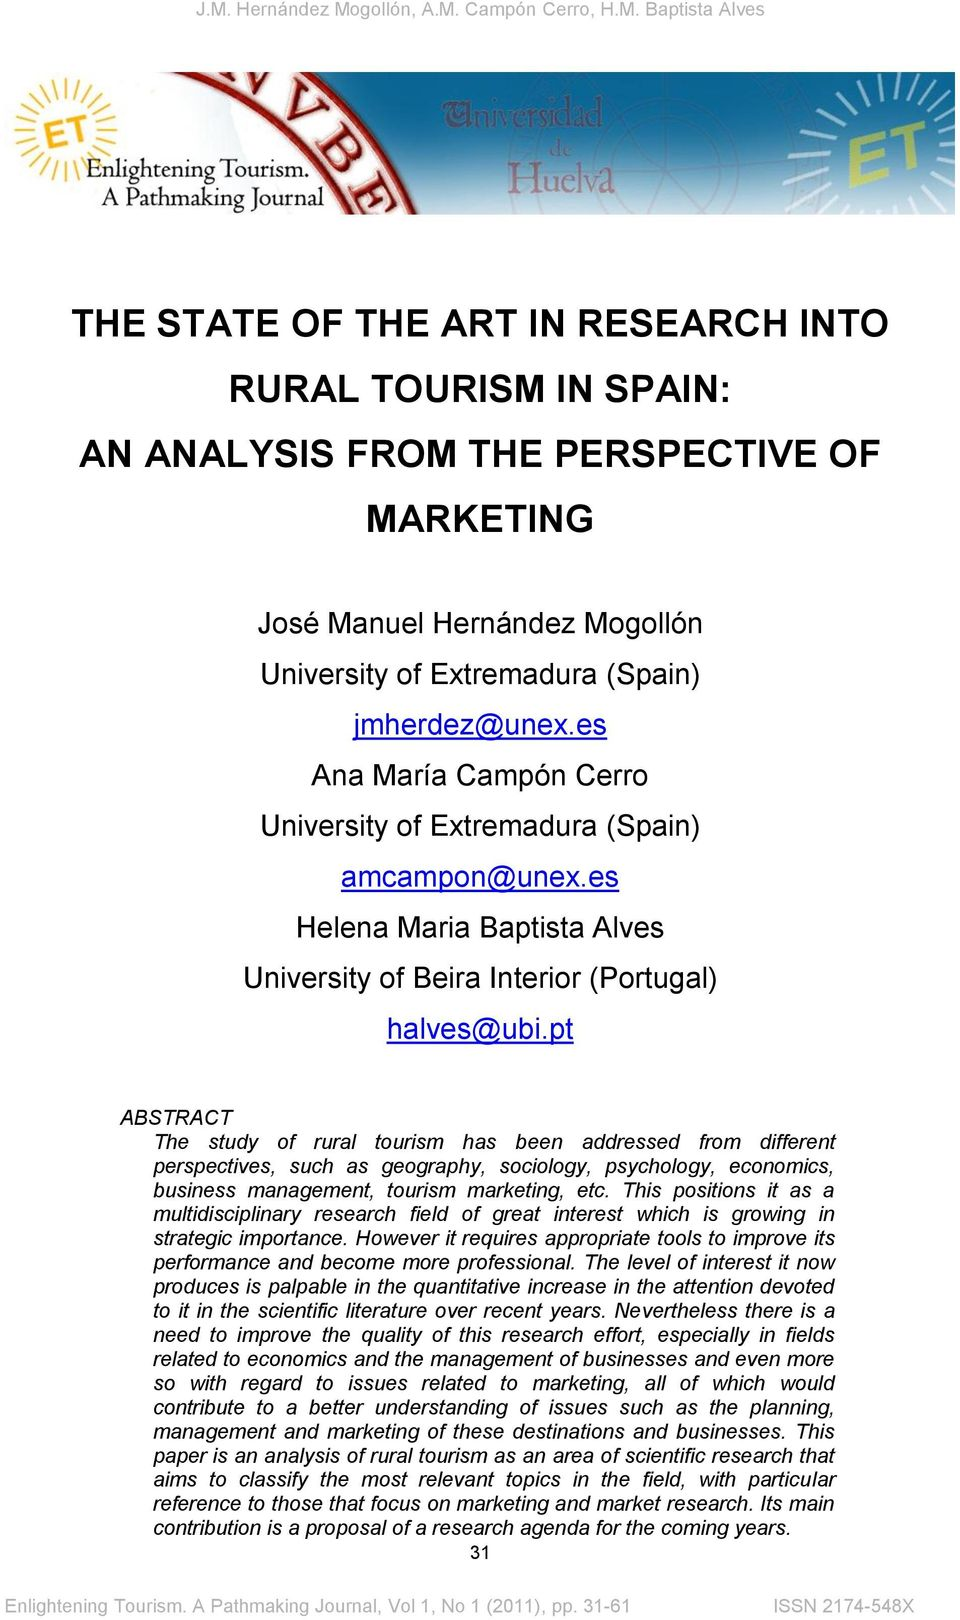 pt ABSTRACT The study of rural tourism has been addressed from different perspectives, such as geography, sociology, psychology, economics, business management, tourism marketing, etc.